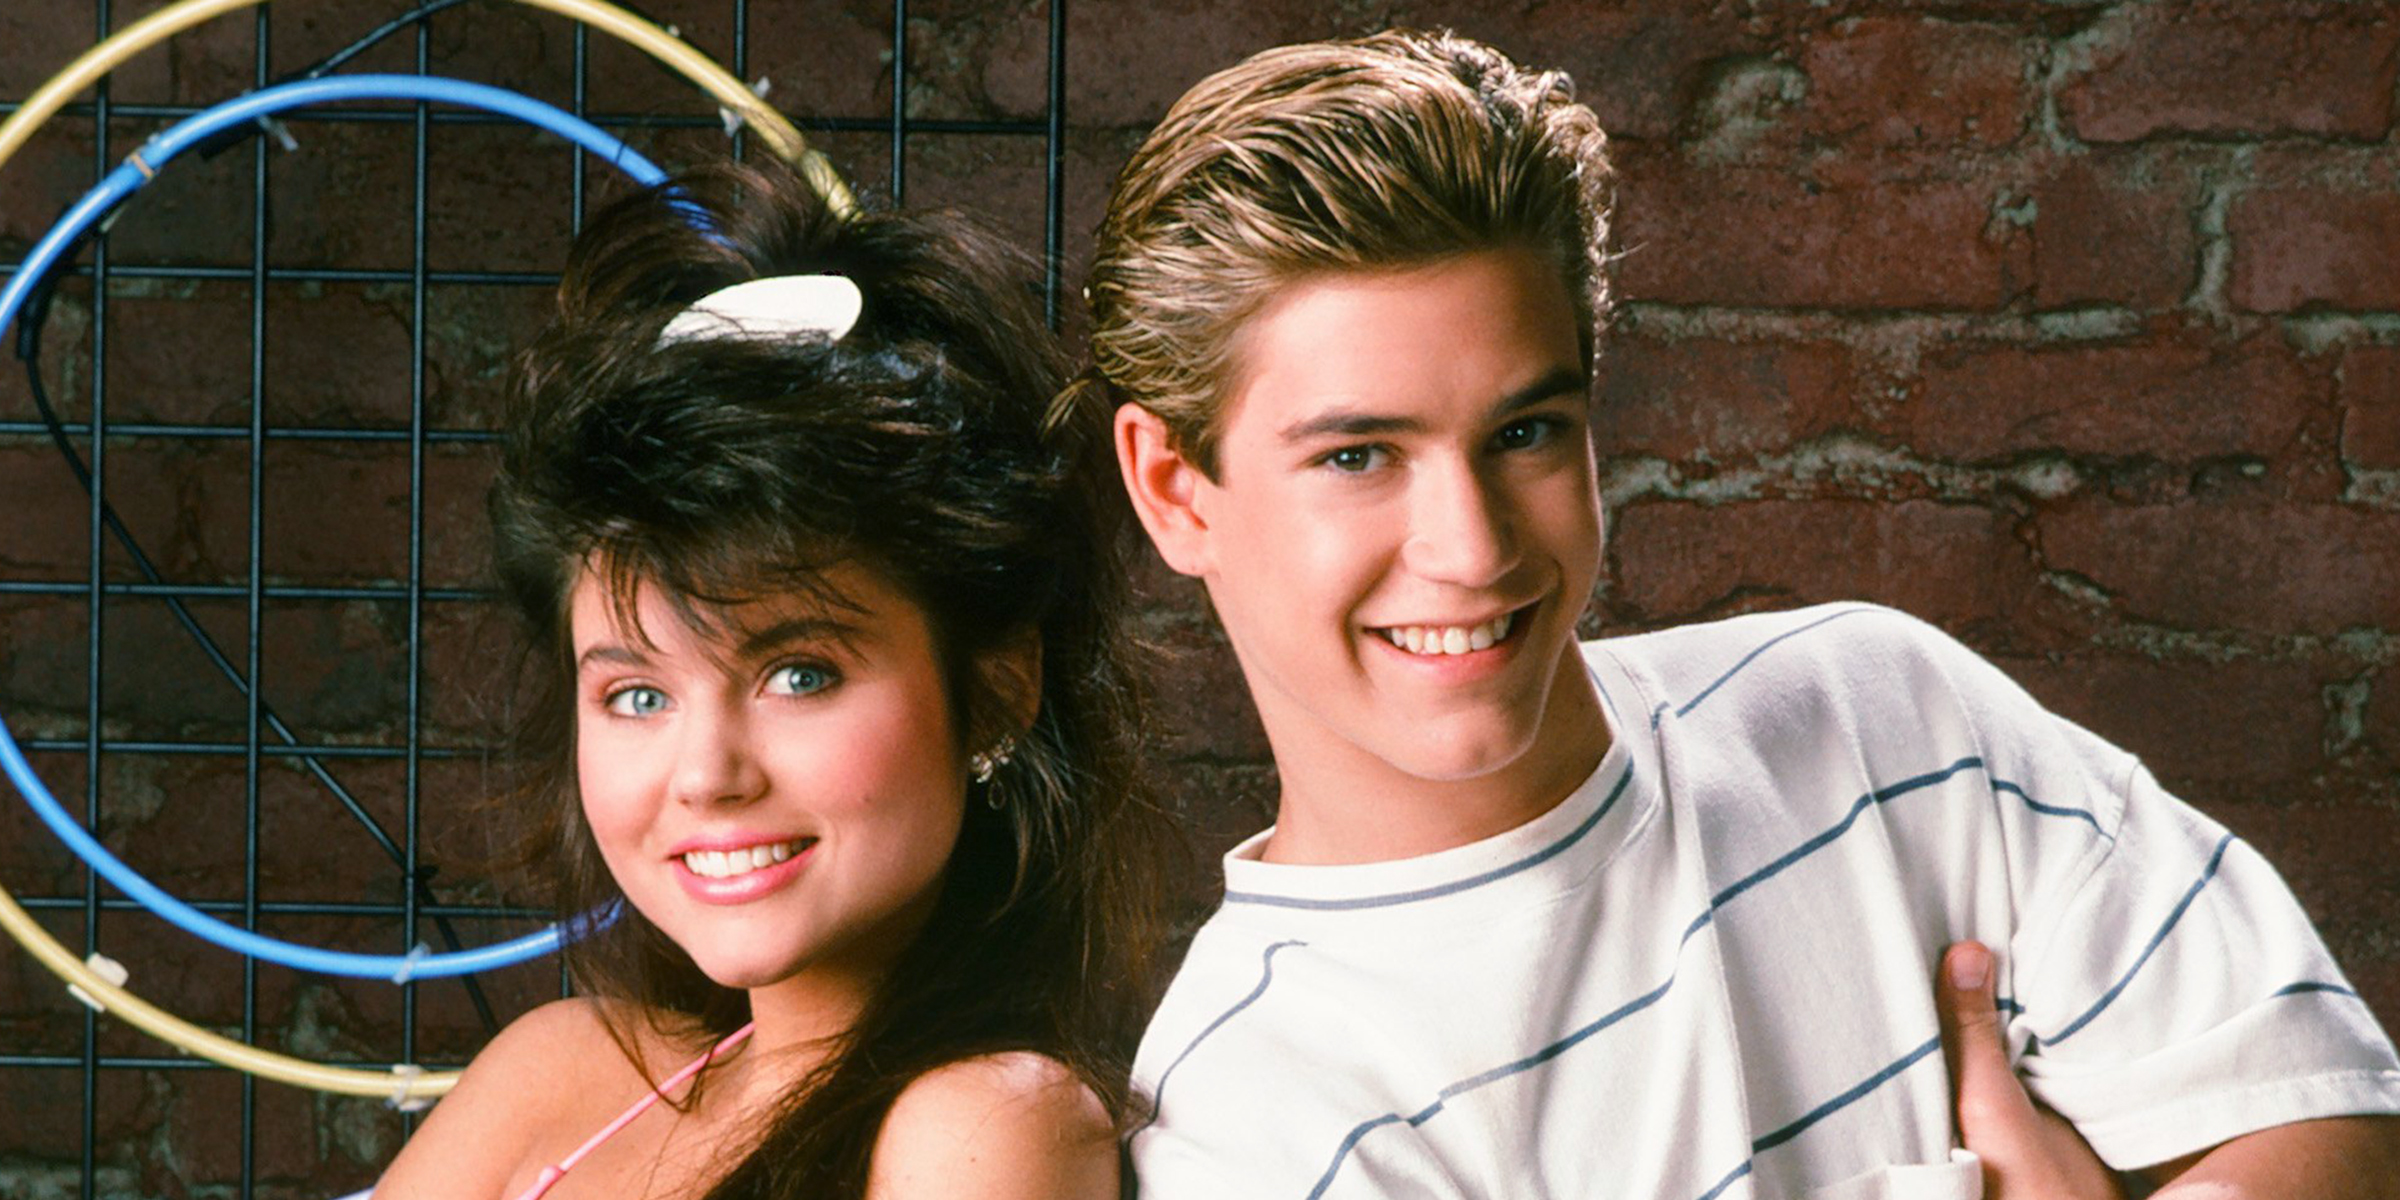 Tiffani Thiessen says she won't be on the 'Saved by the Bell' reboot